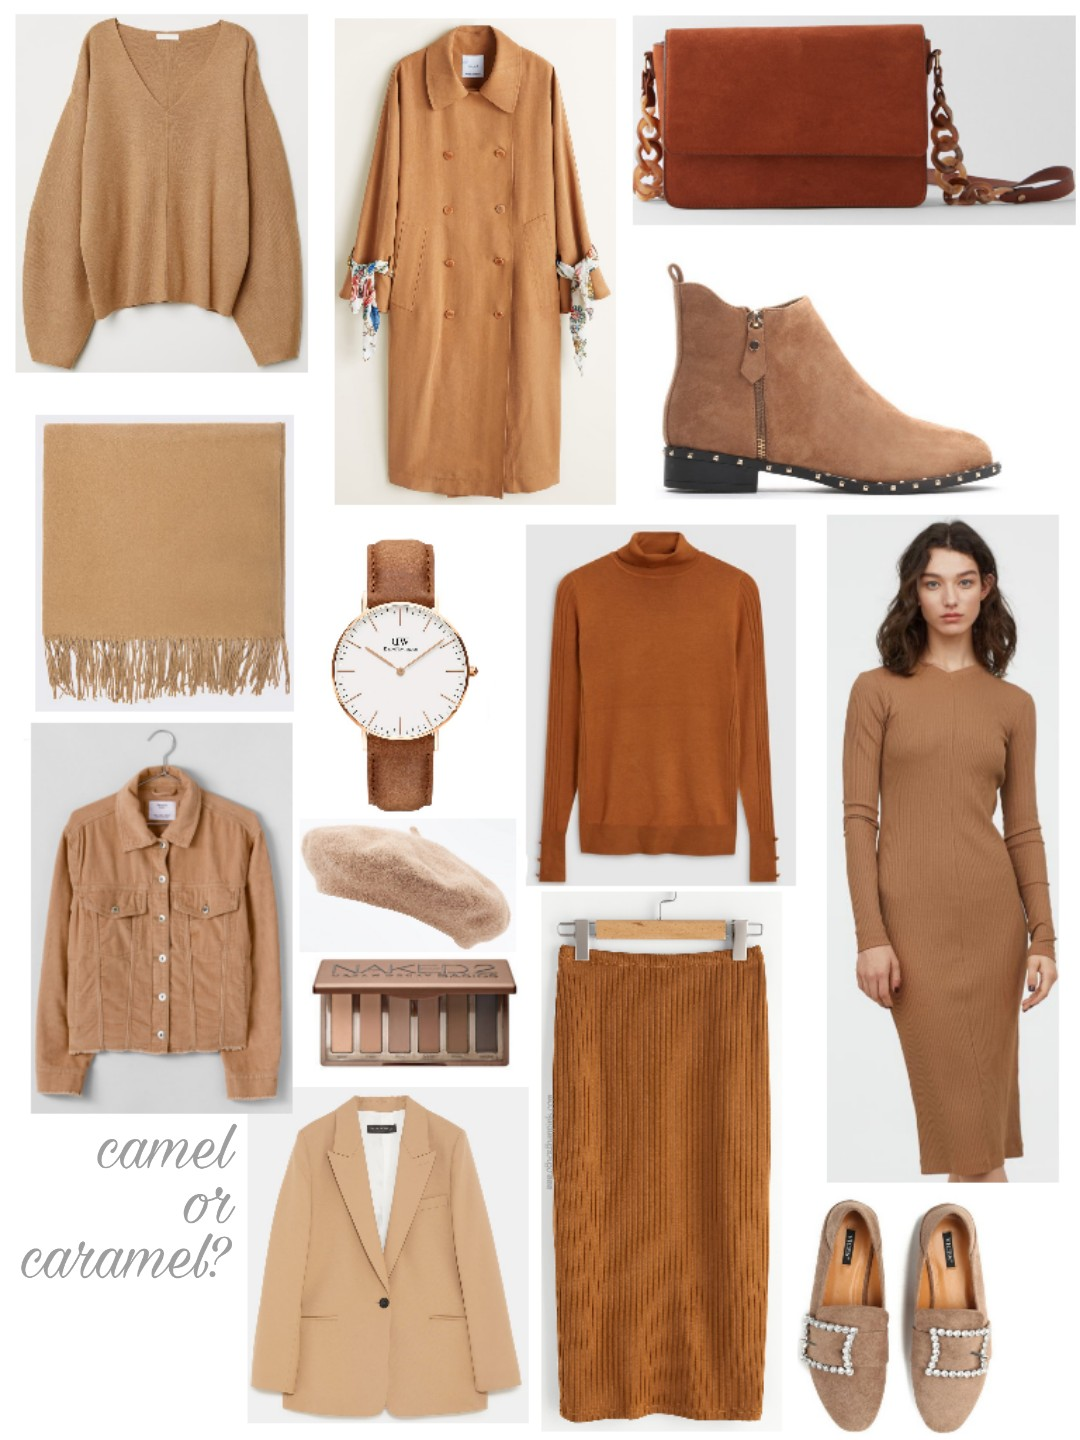 Camel or caramel autumn?